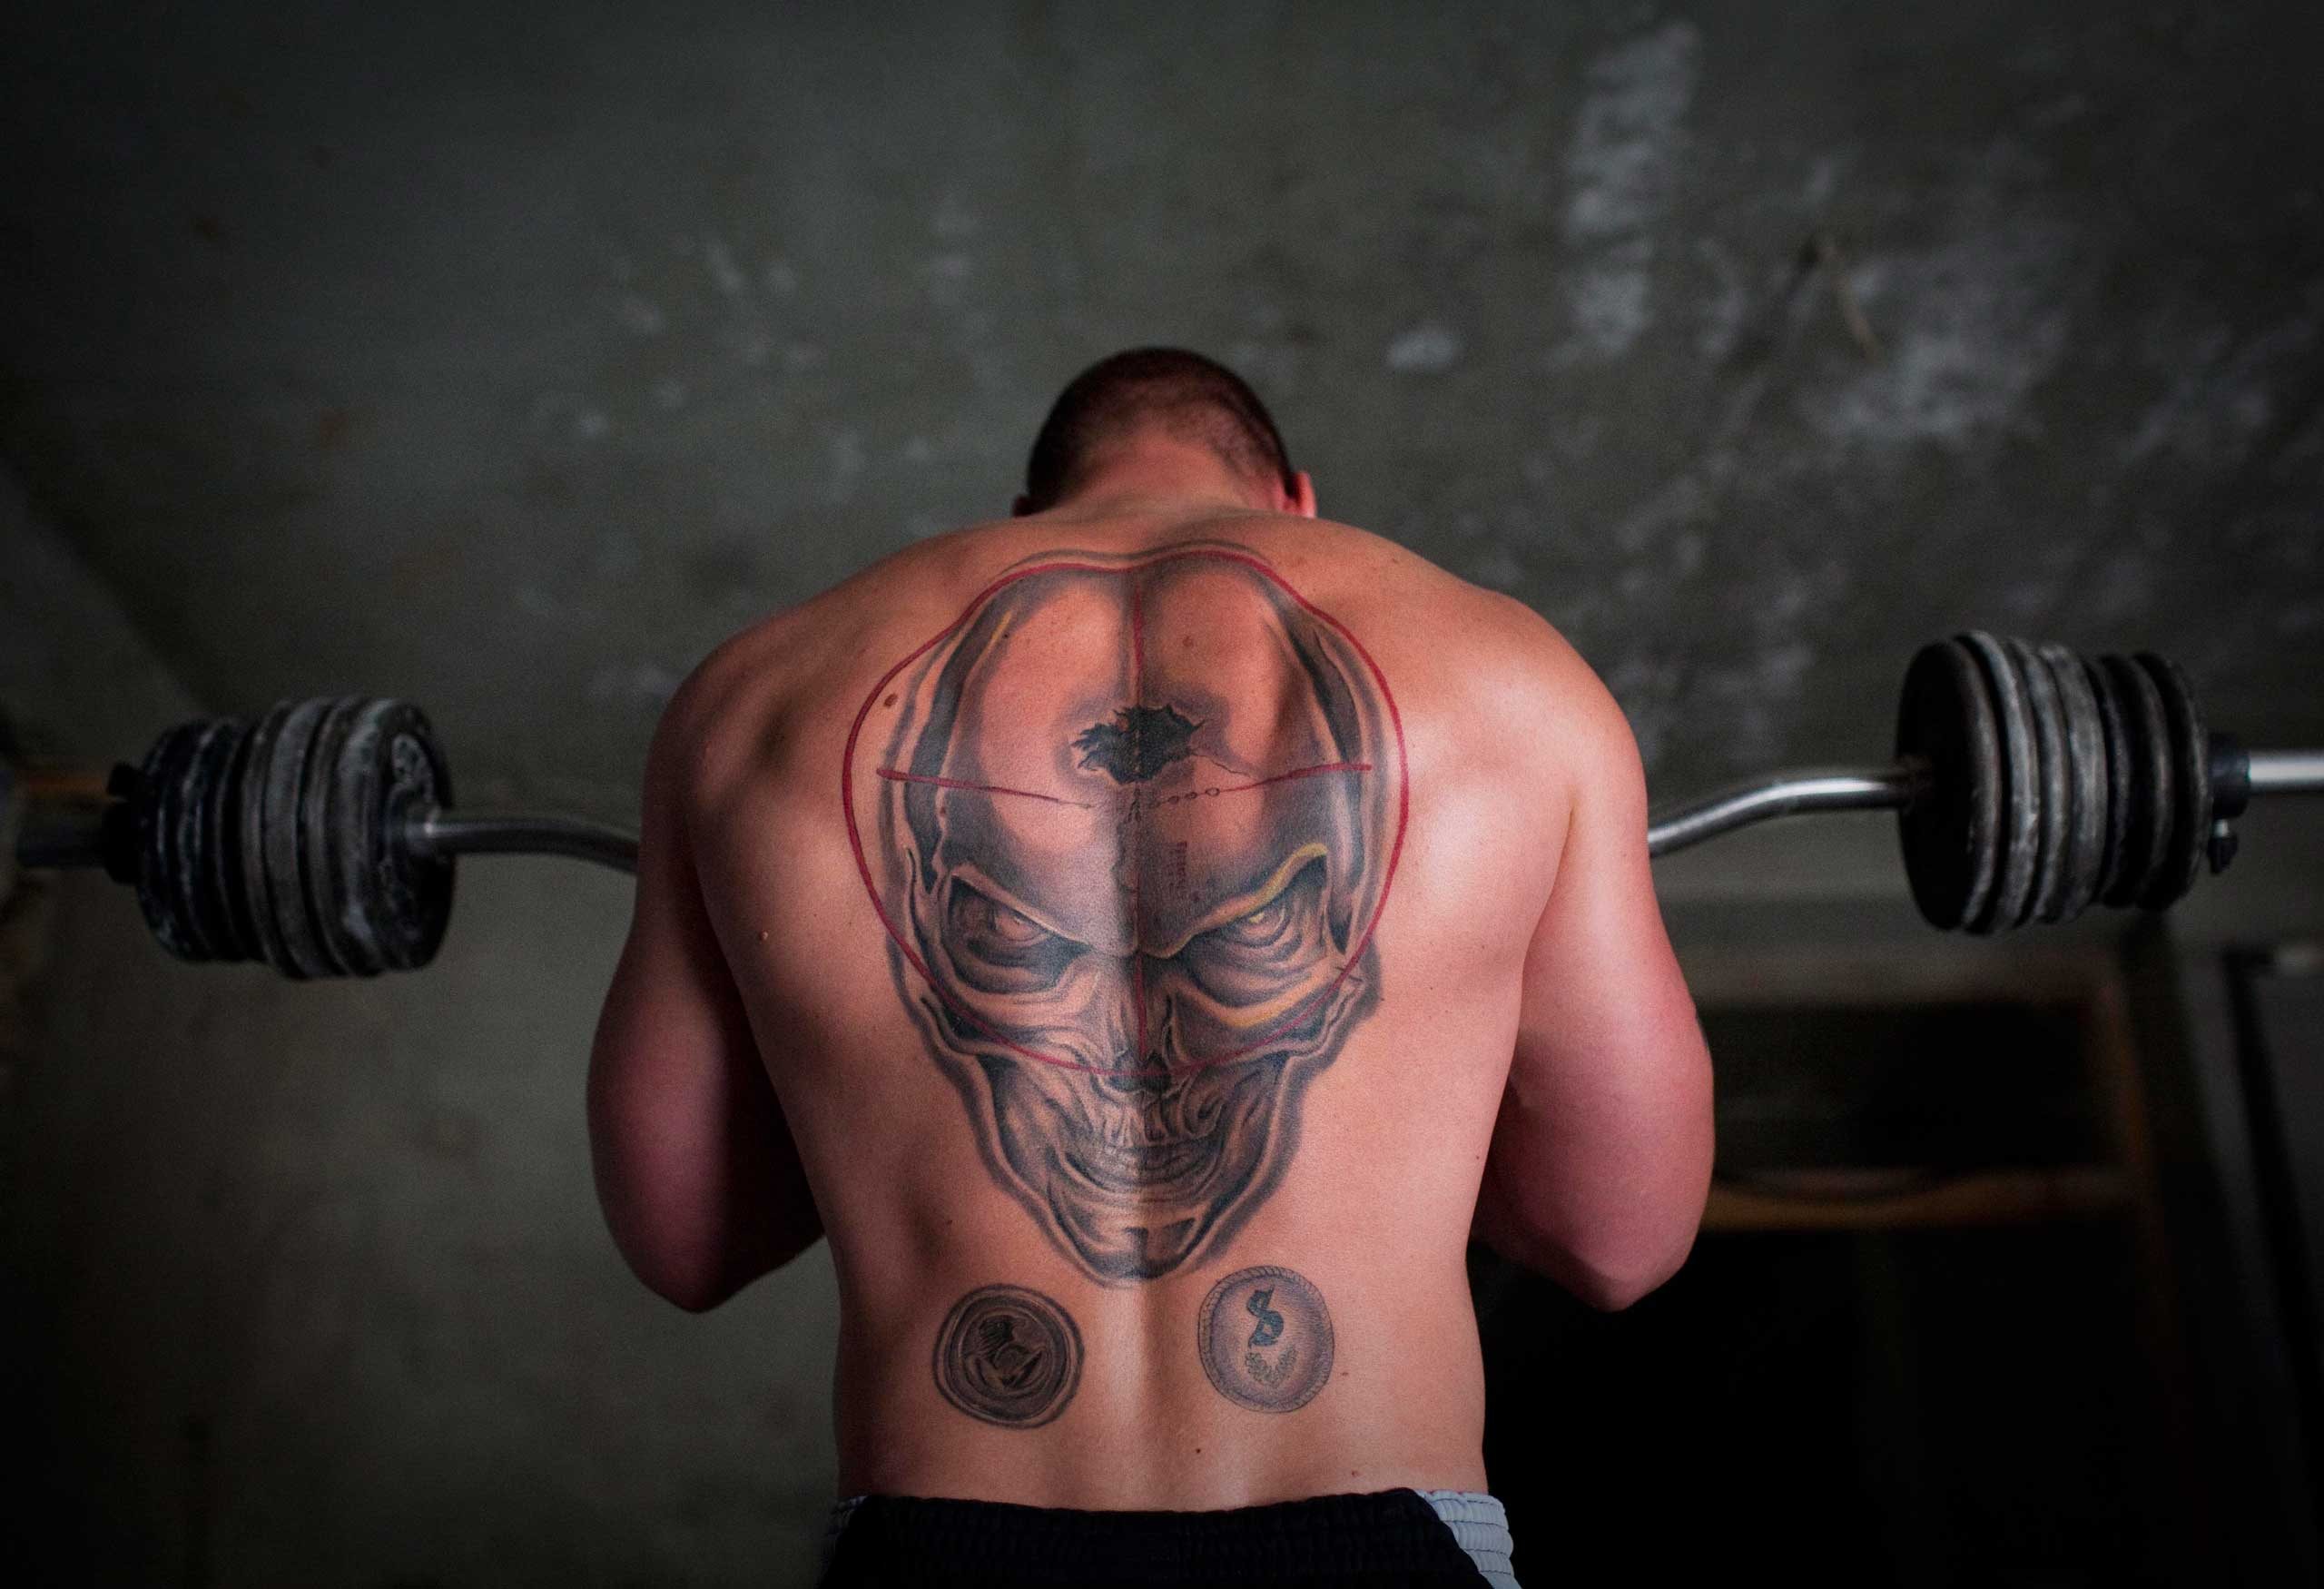 A German soldier lifts weights at his combat outpost in Char Darah, outisde Kunduz, Afghanistan, Sept. 17, 2011.